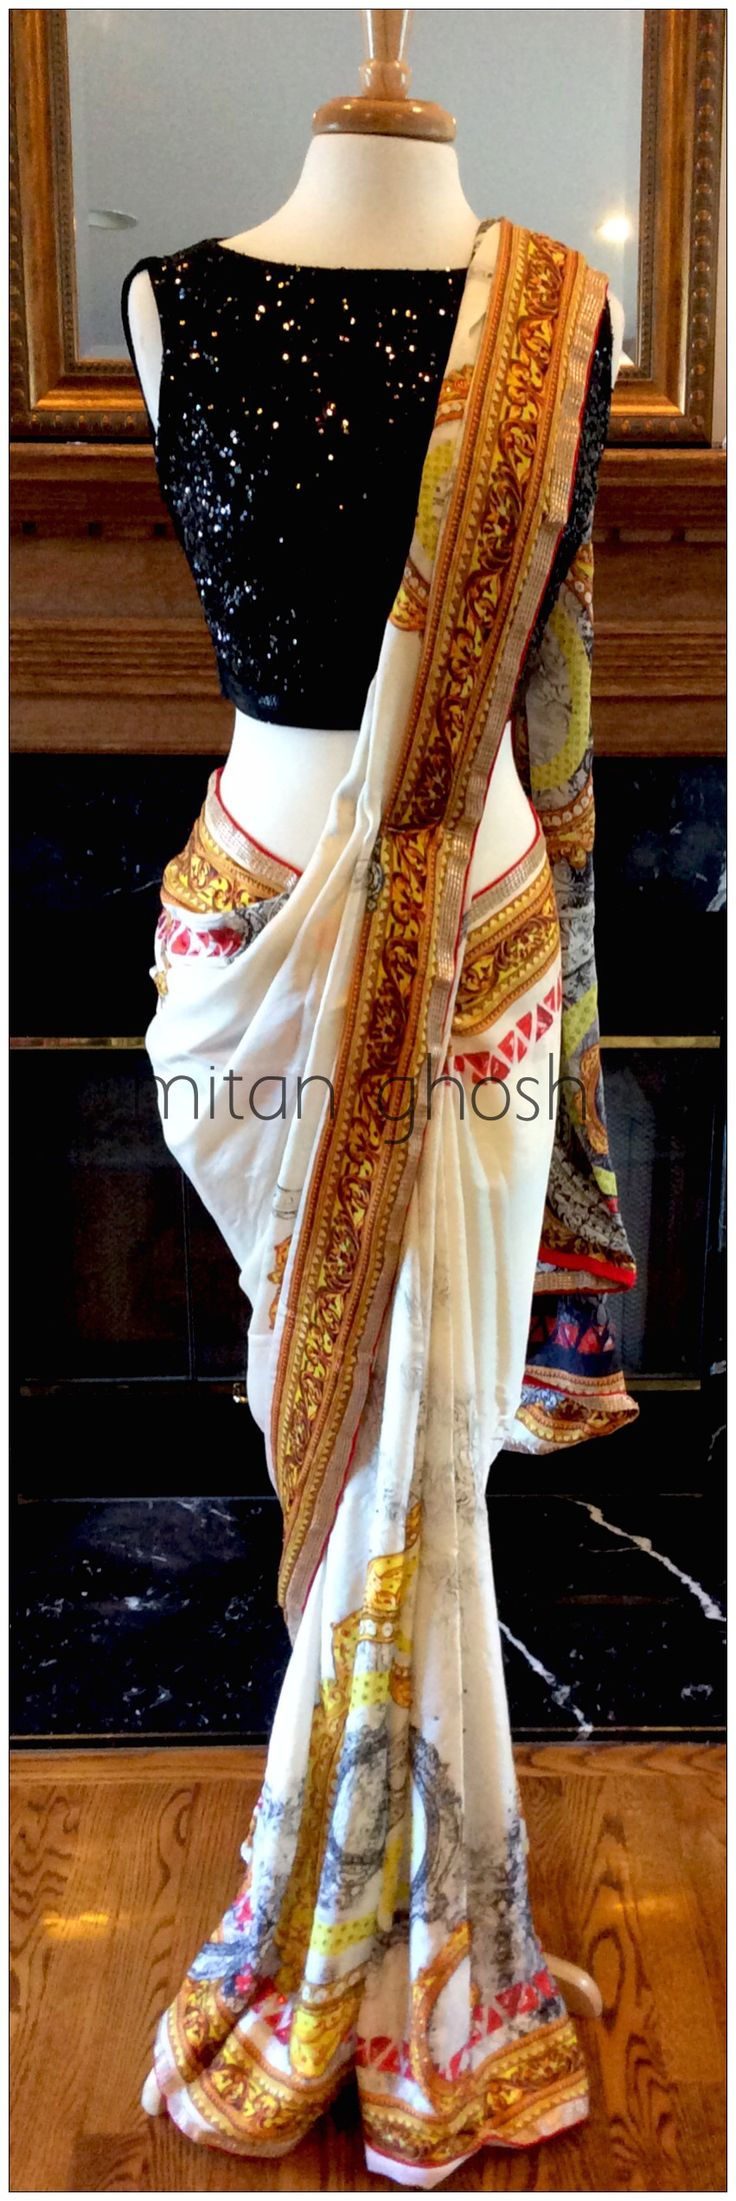 Digital printed saree with crystals